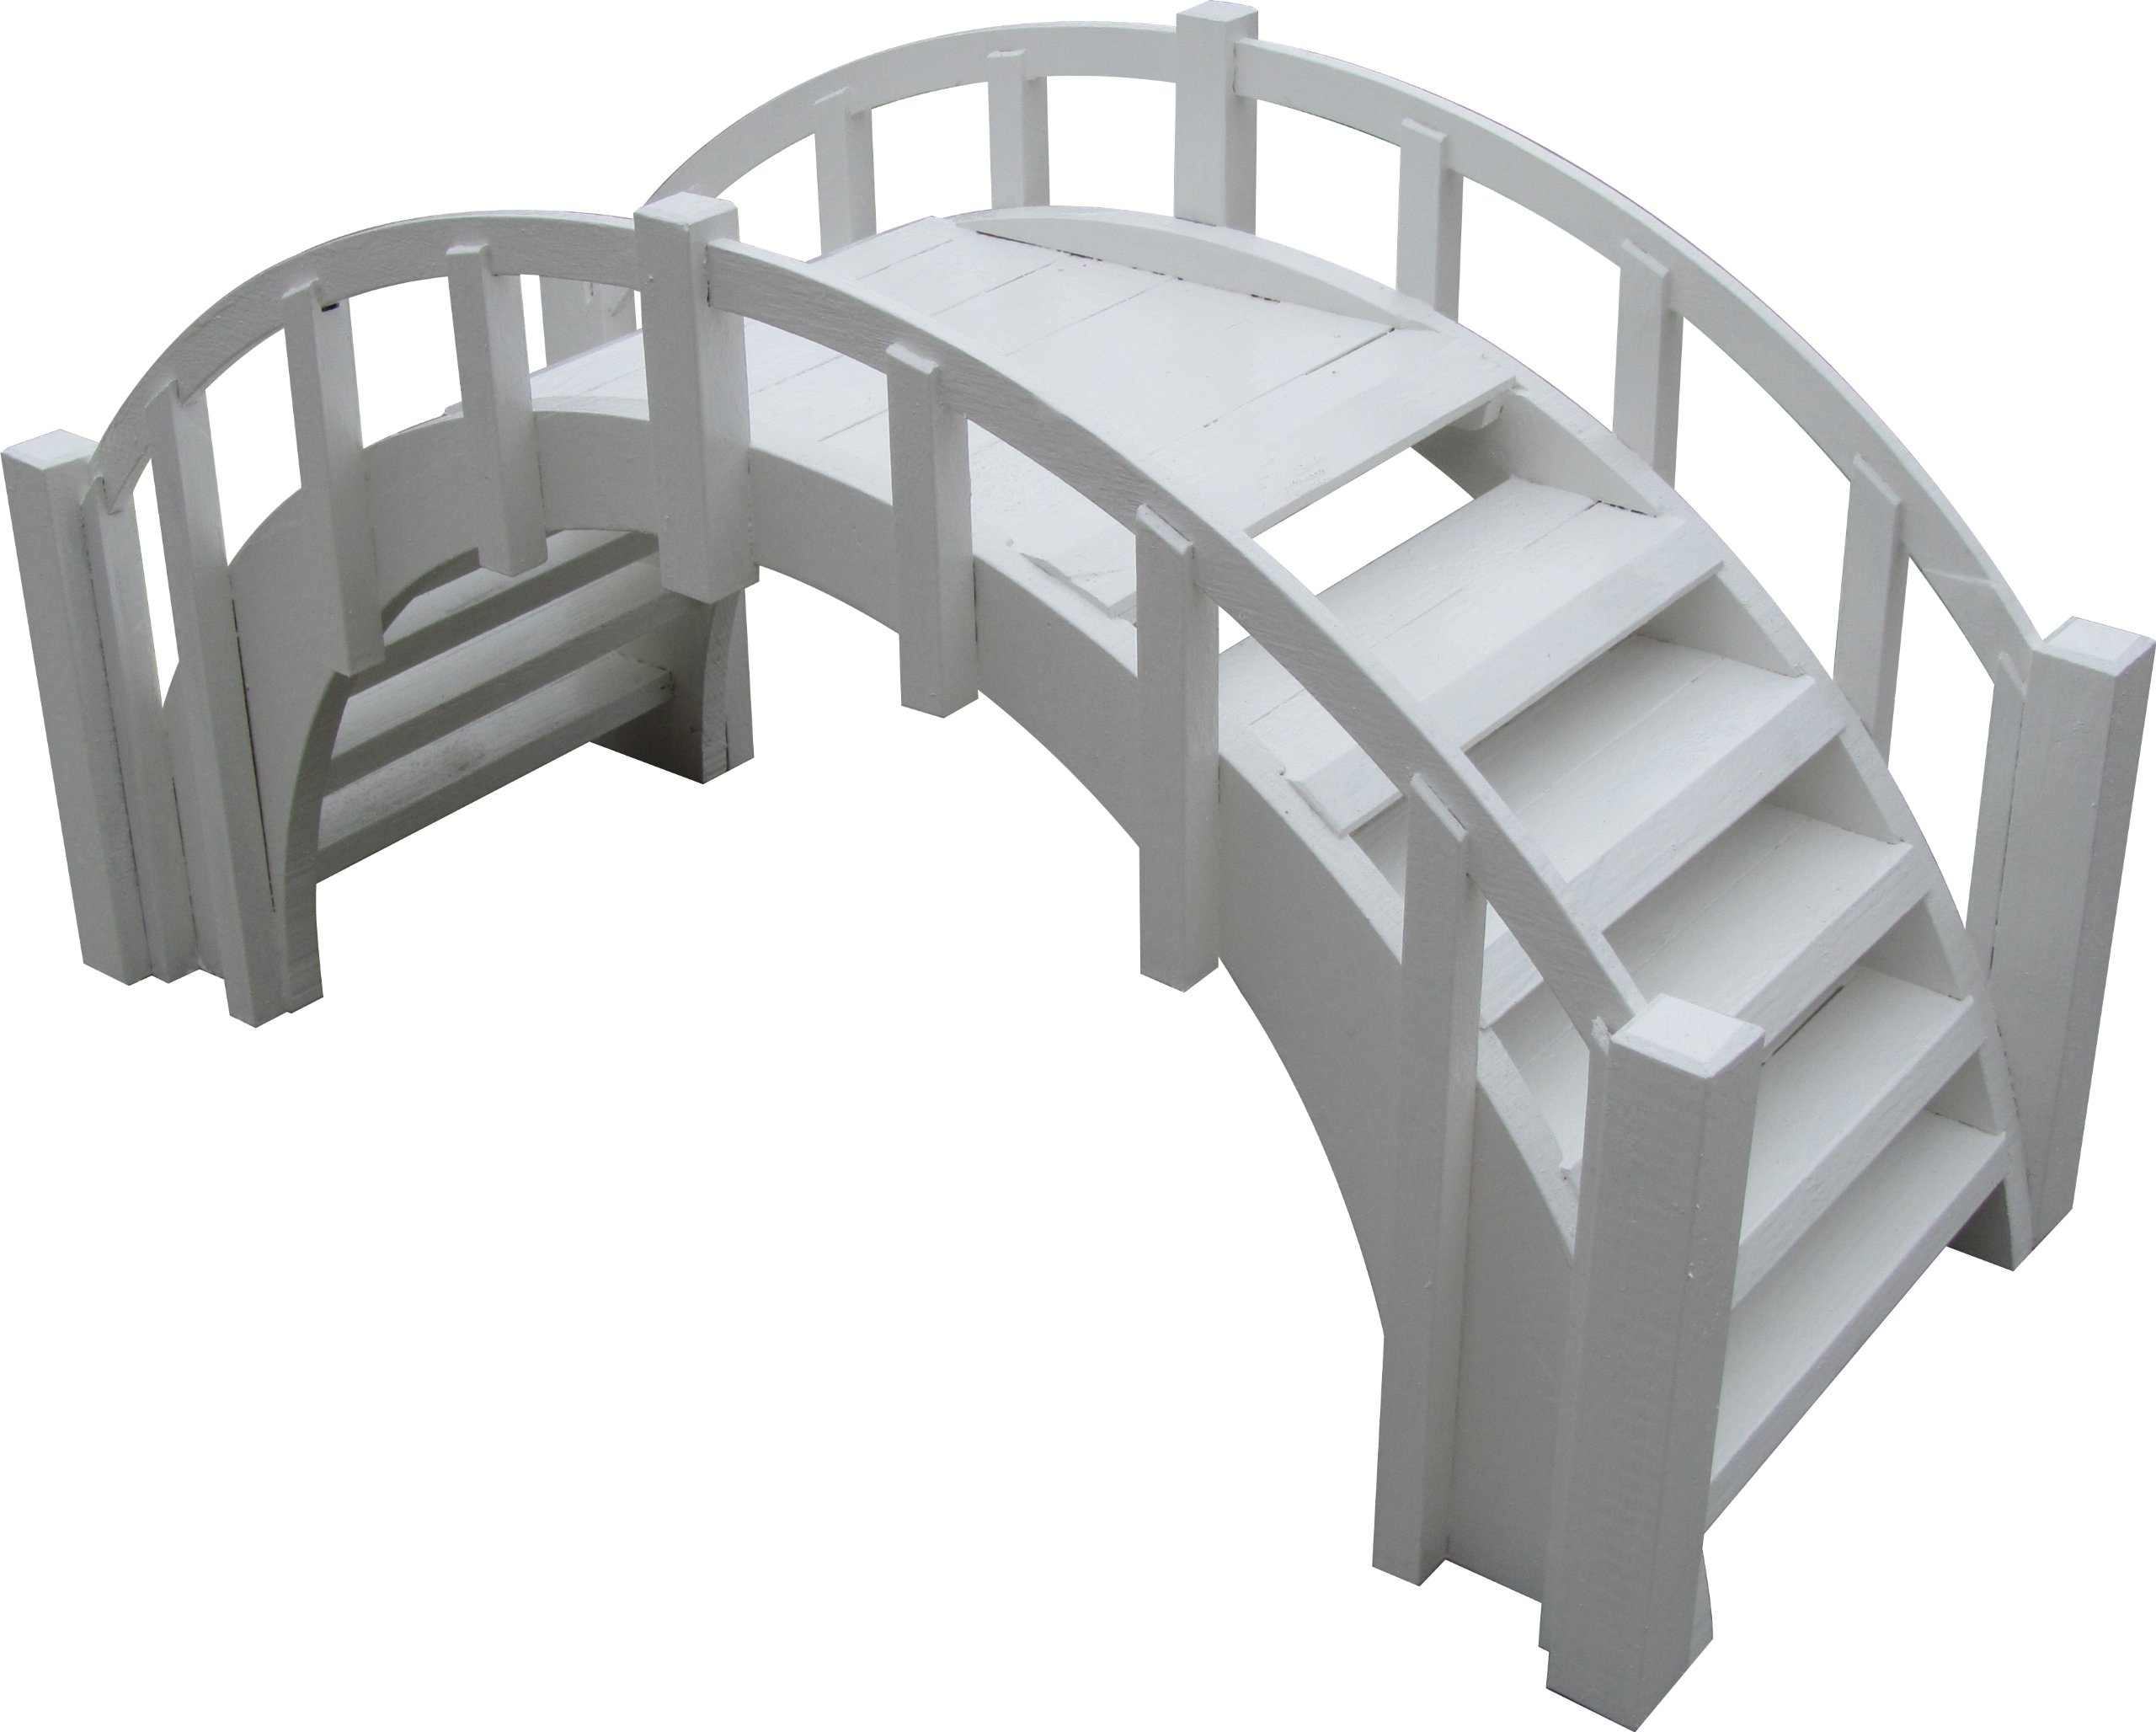 SamsGazebos Fairy Tale Arched Wood Garden Bridge with Decorative Picket Railings and Steps, 33'' L, White